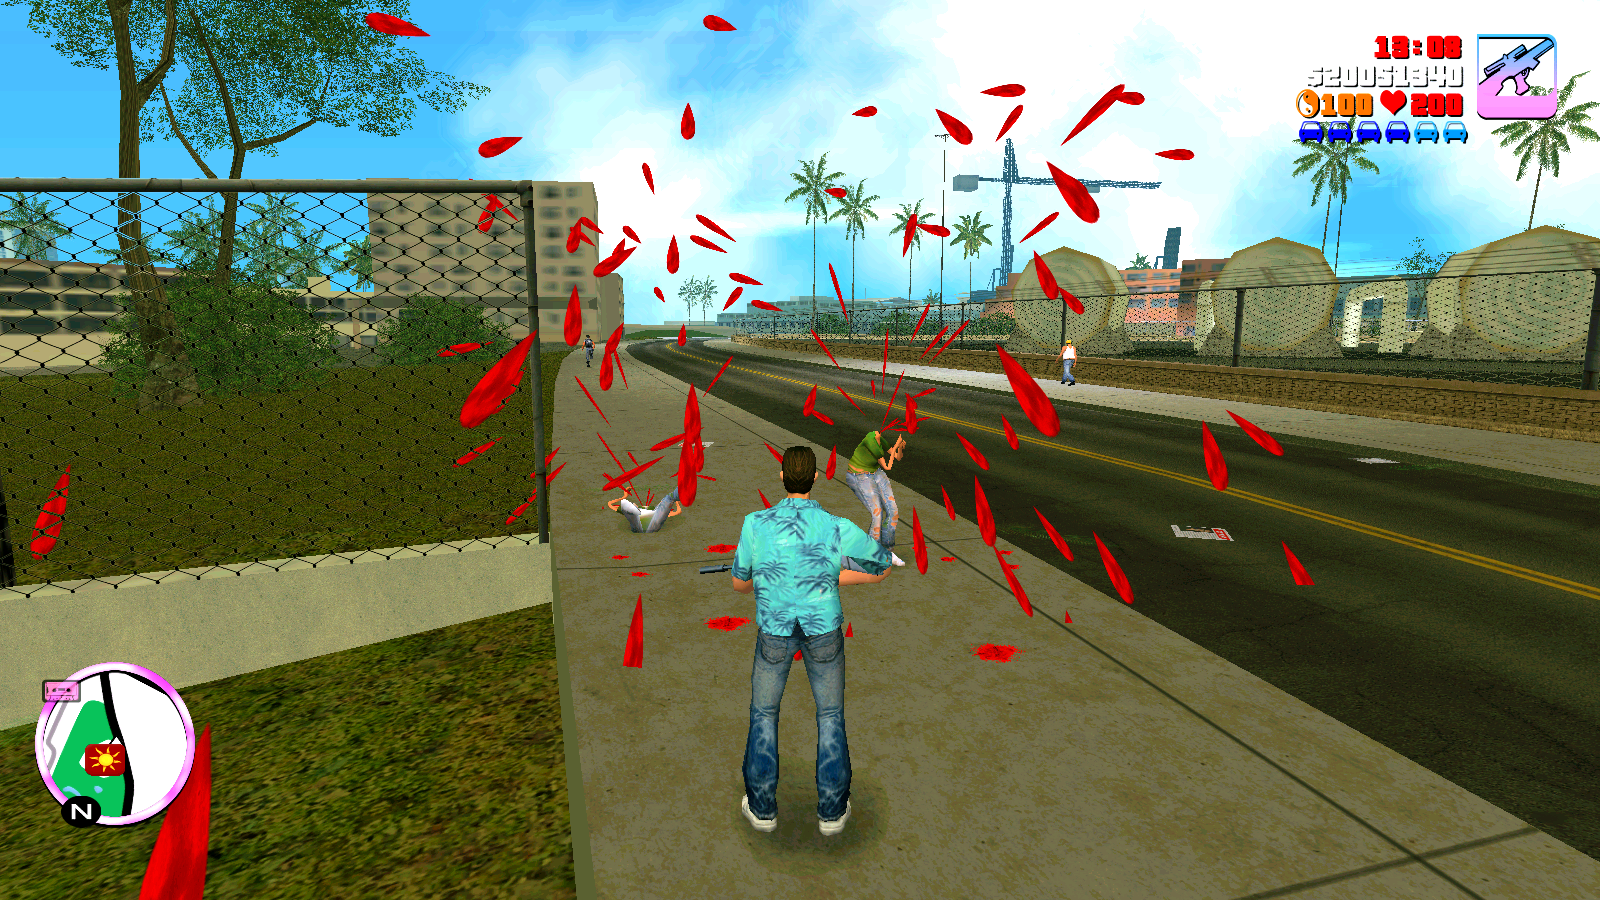 Gta vice city fucking bithc mod hentai scene